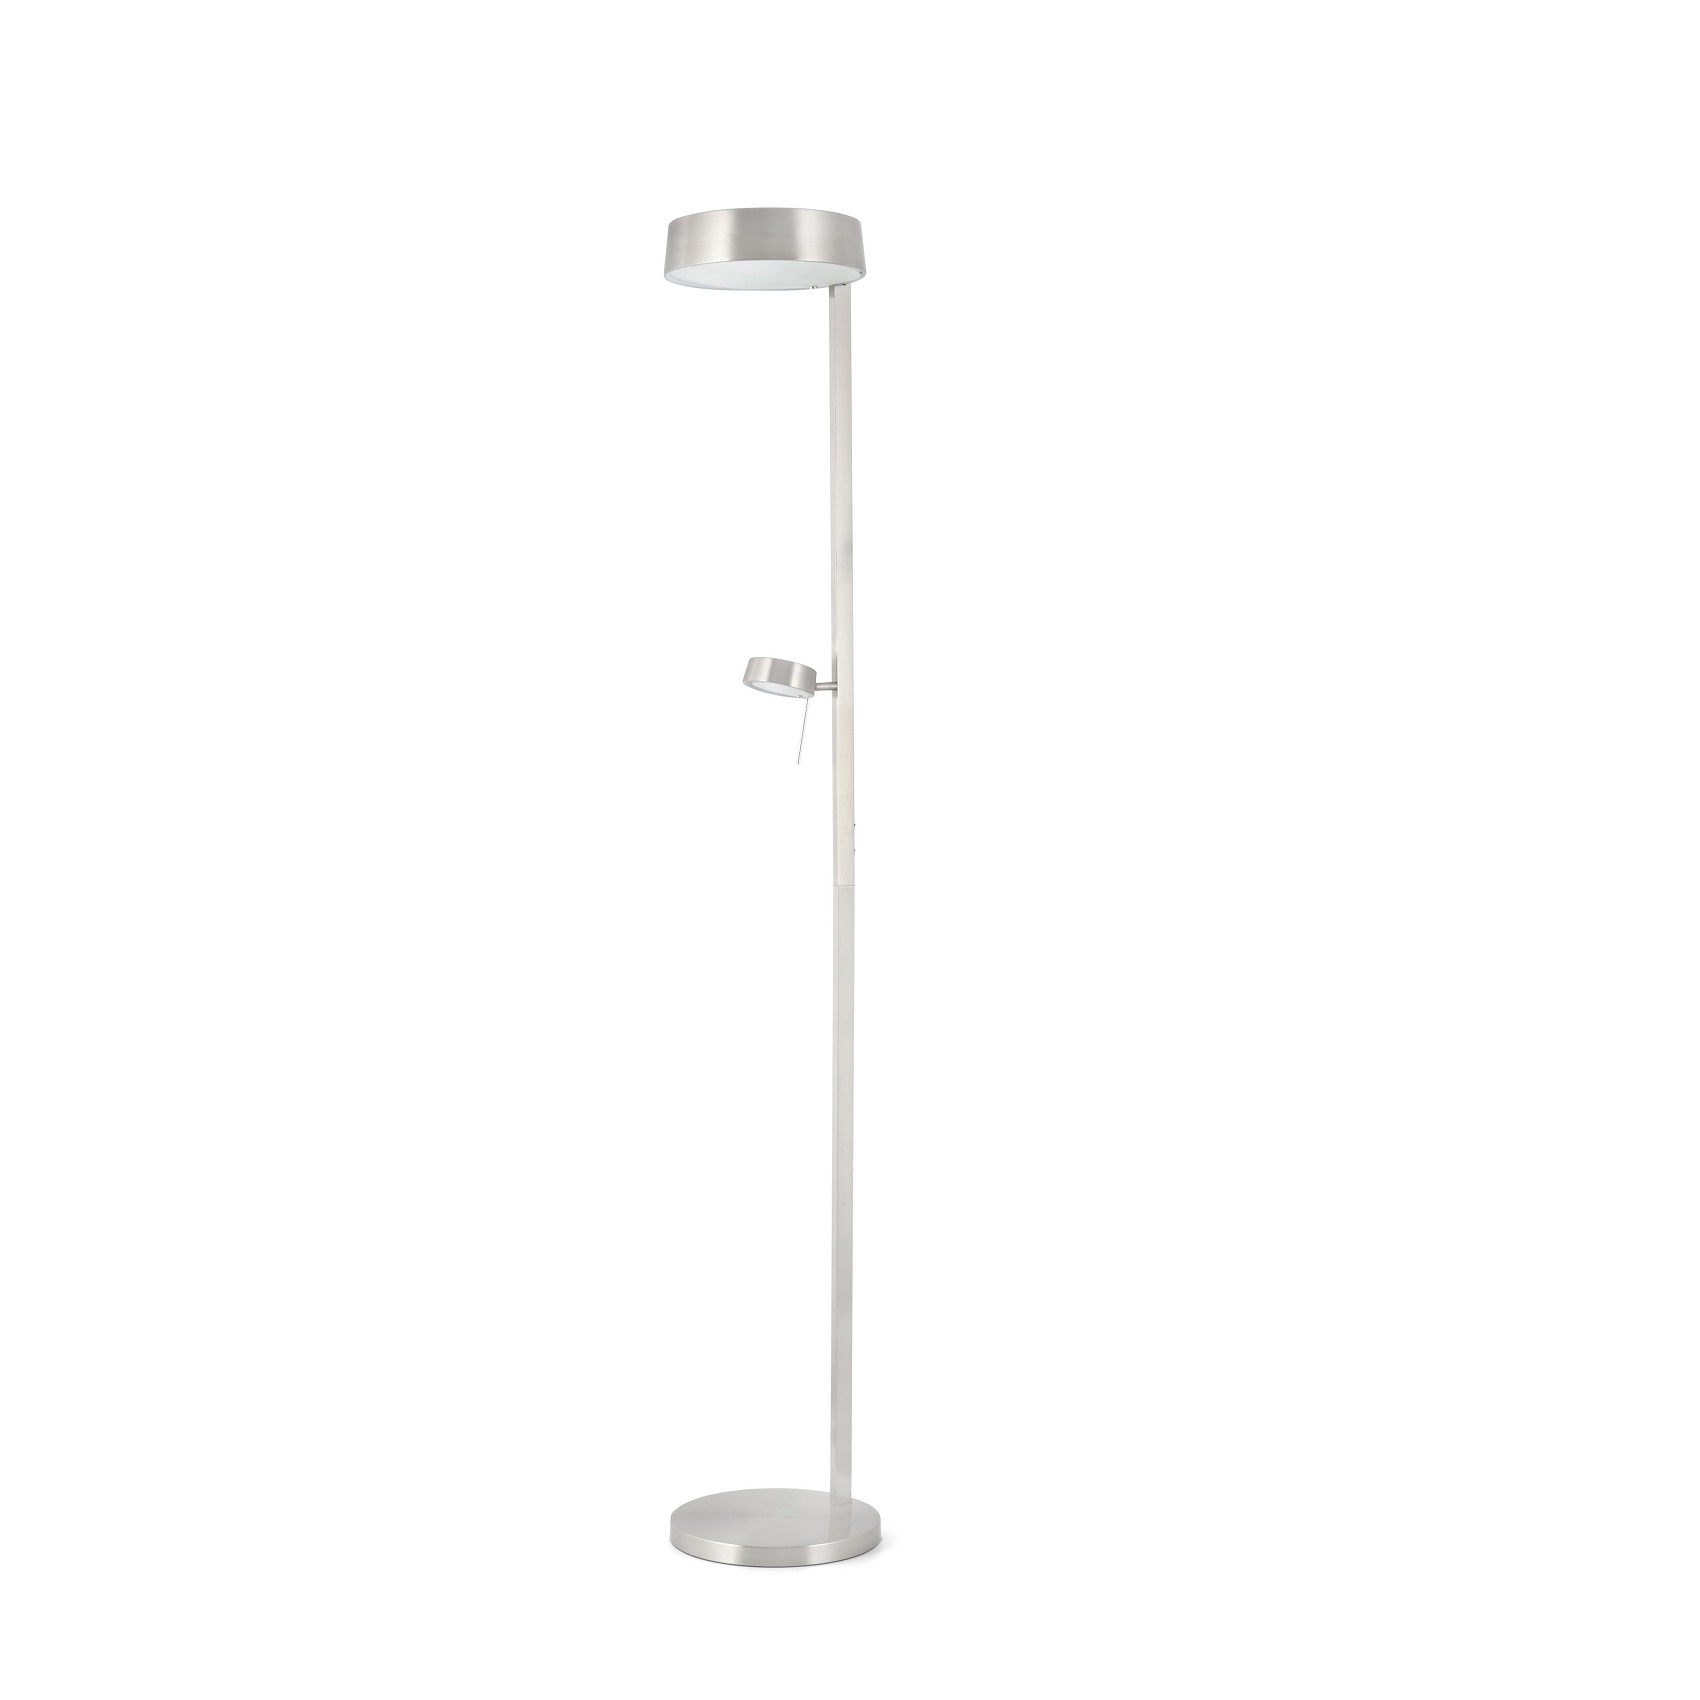 Lampadaire design int rieur nexo faro nickel satin for Lampadaire interieur design